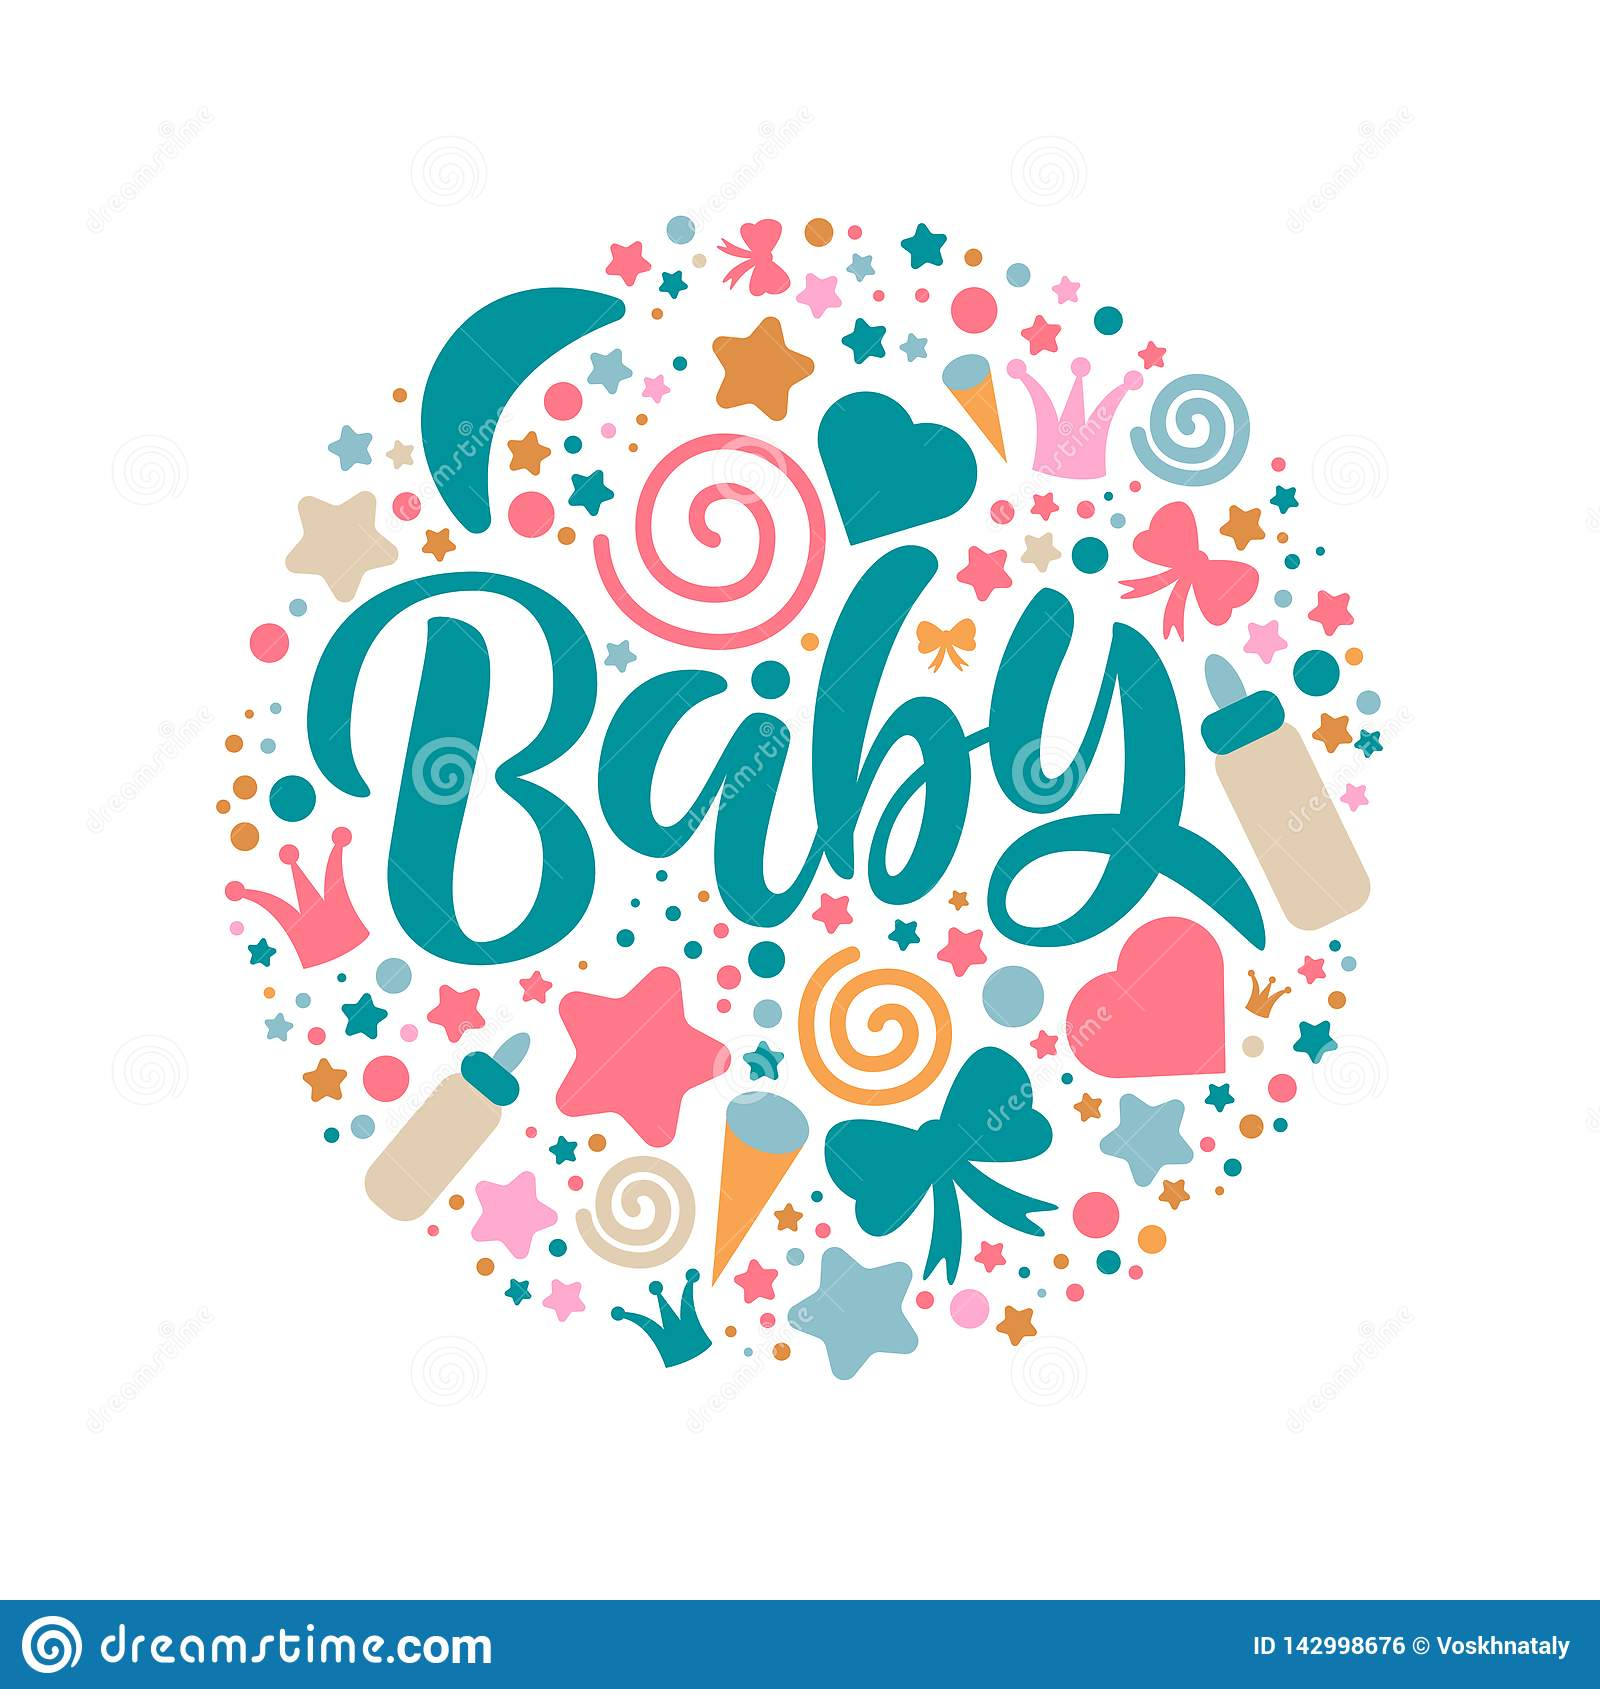 Baby Shower Invitation Template with hand lettering